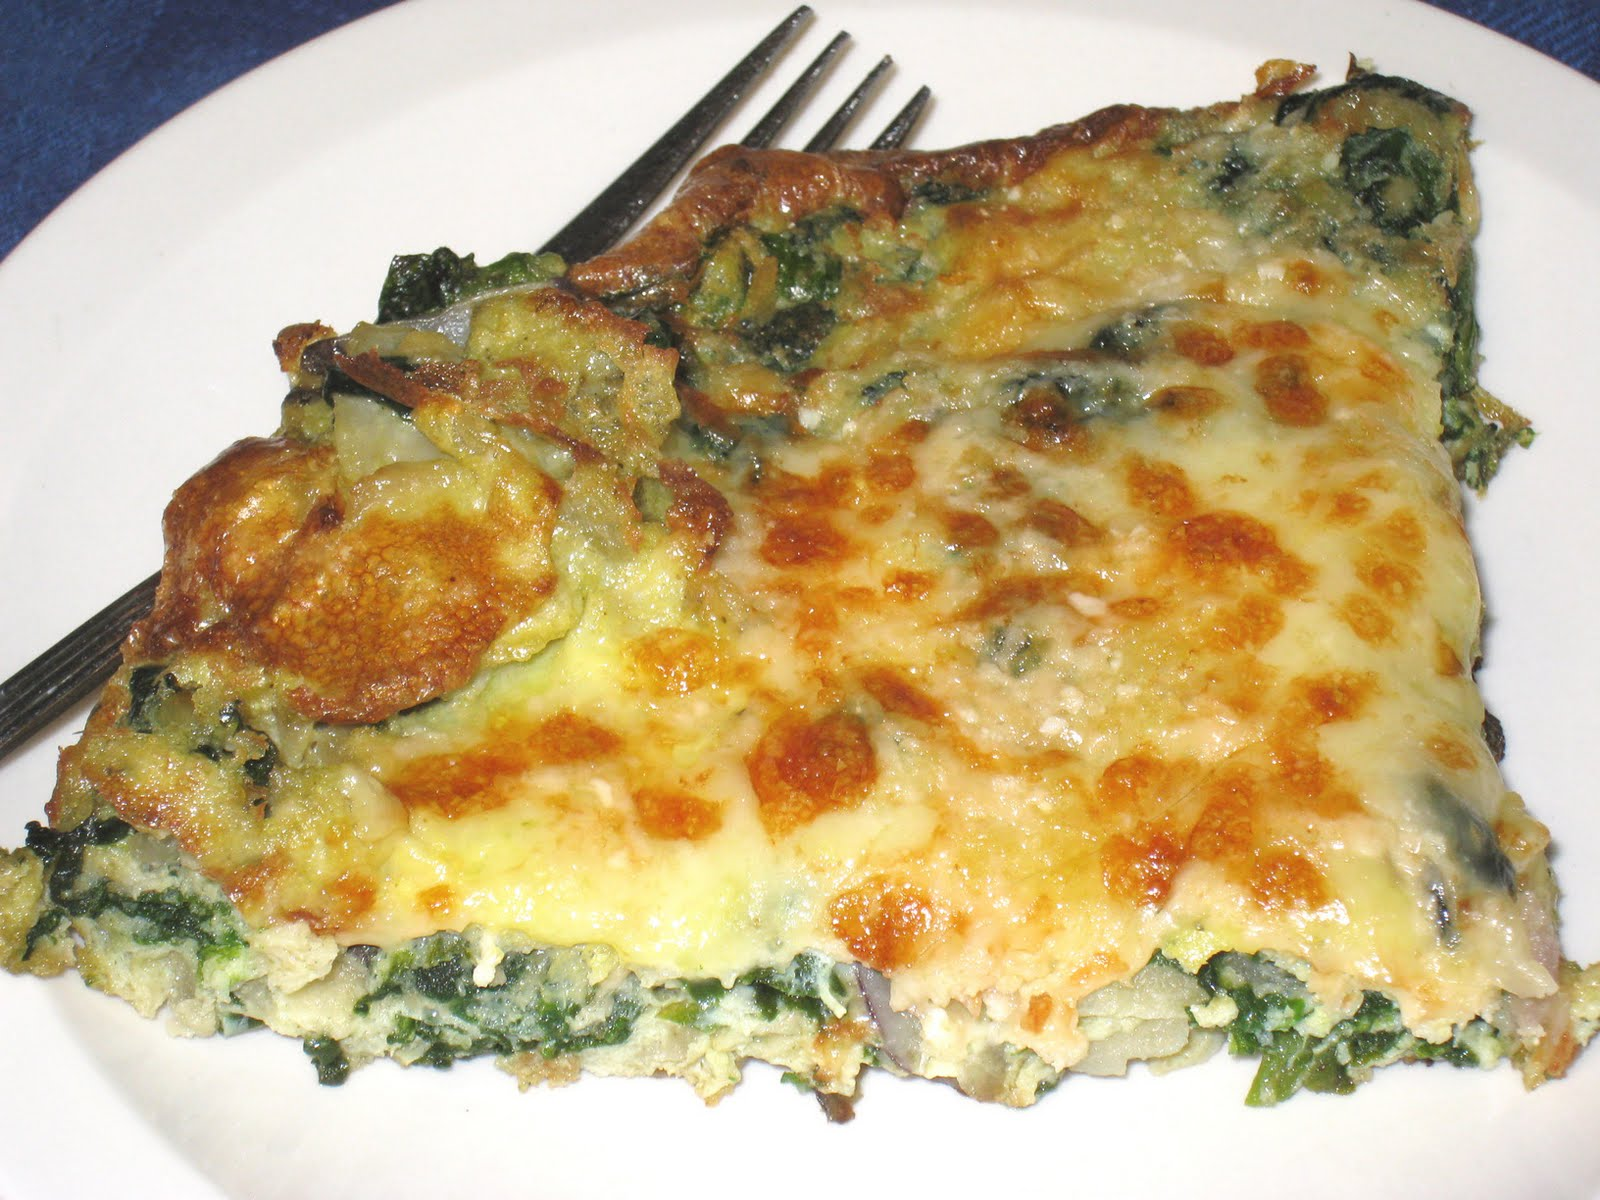 Cooking without a Net: Green Market Spinach and Potato Frittata